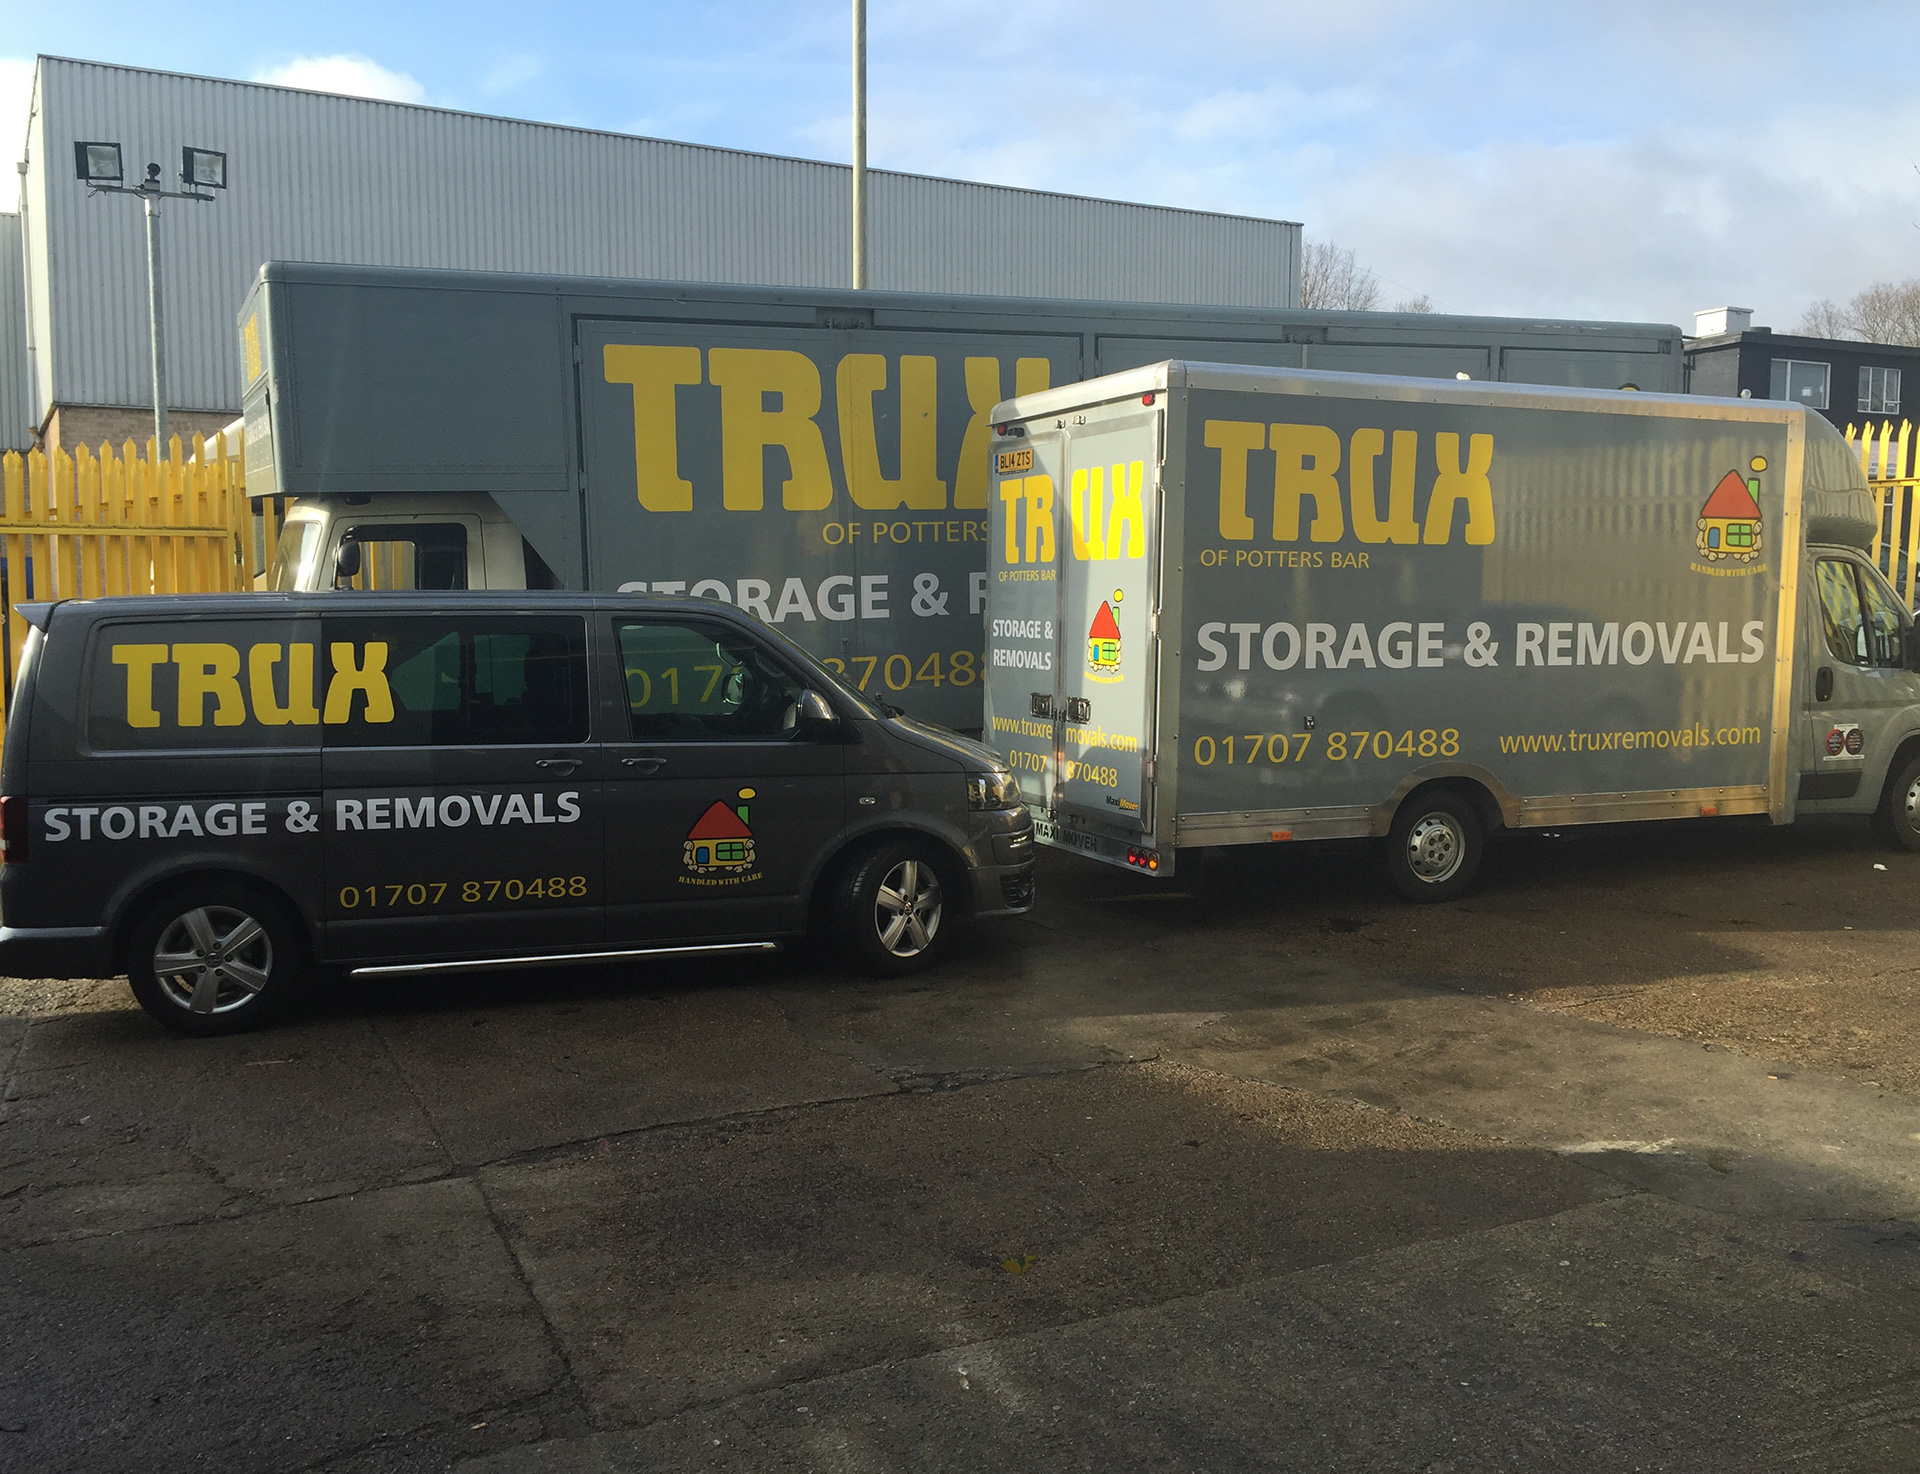 trux removals vehicle